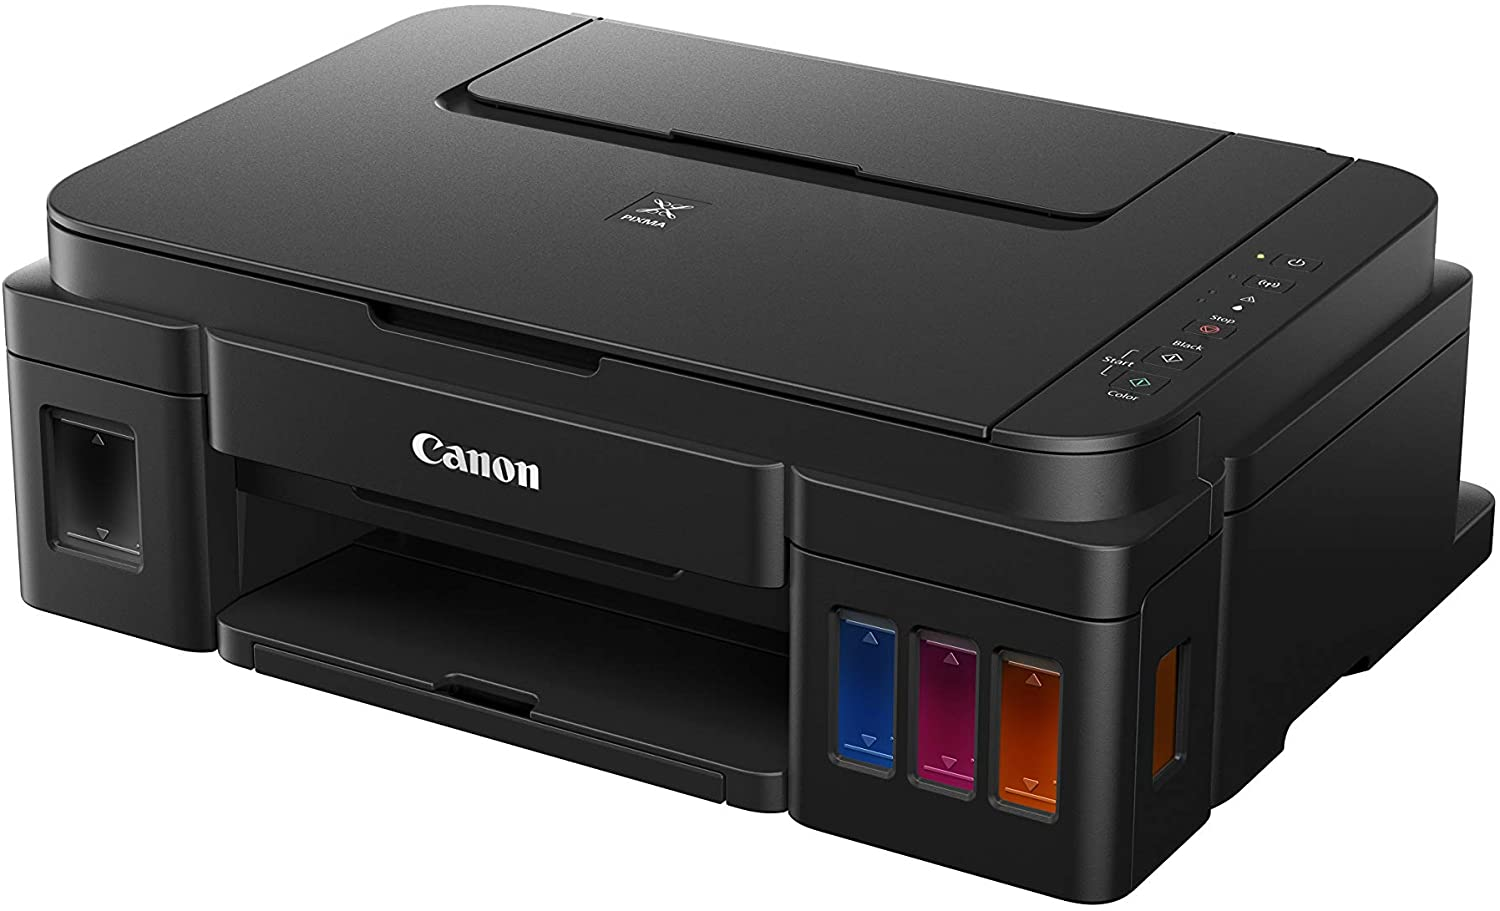 Canon Pixma G3501 All-in-One Inkjet Printer with WiFi 3 in 1